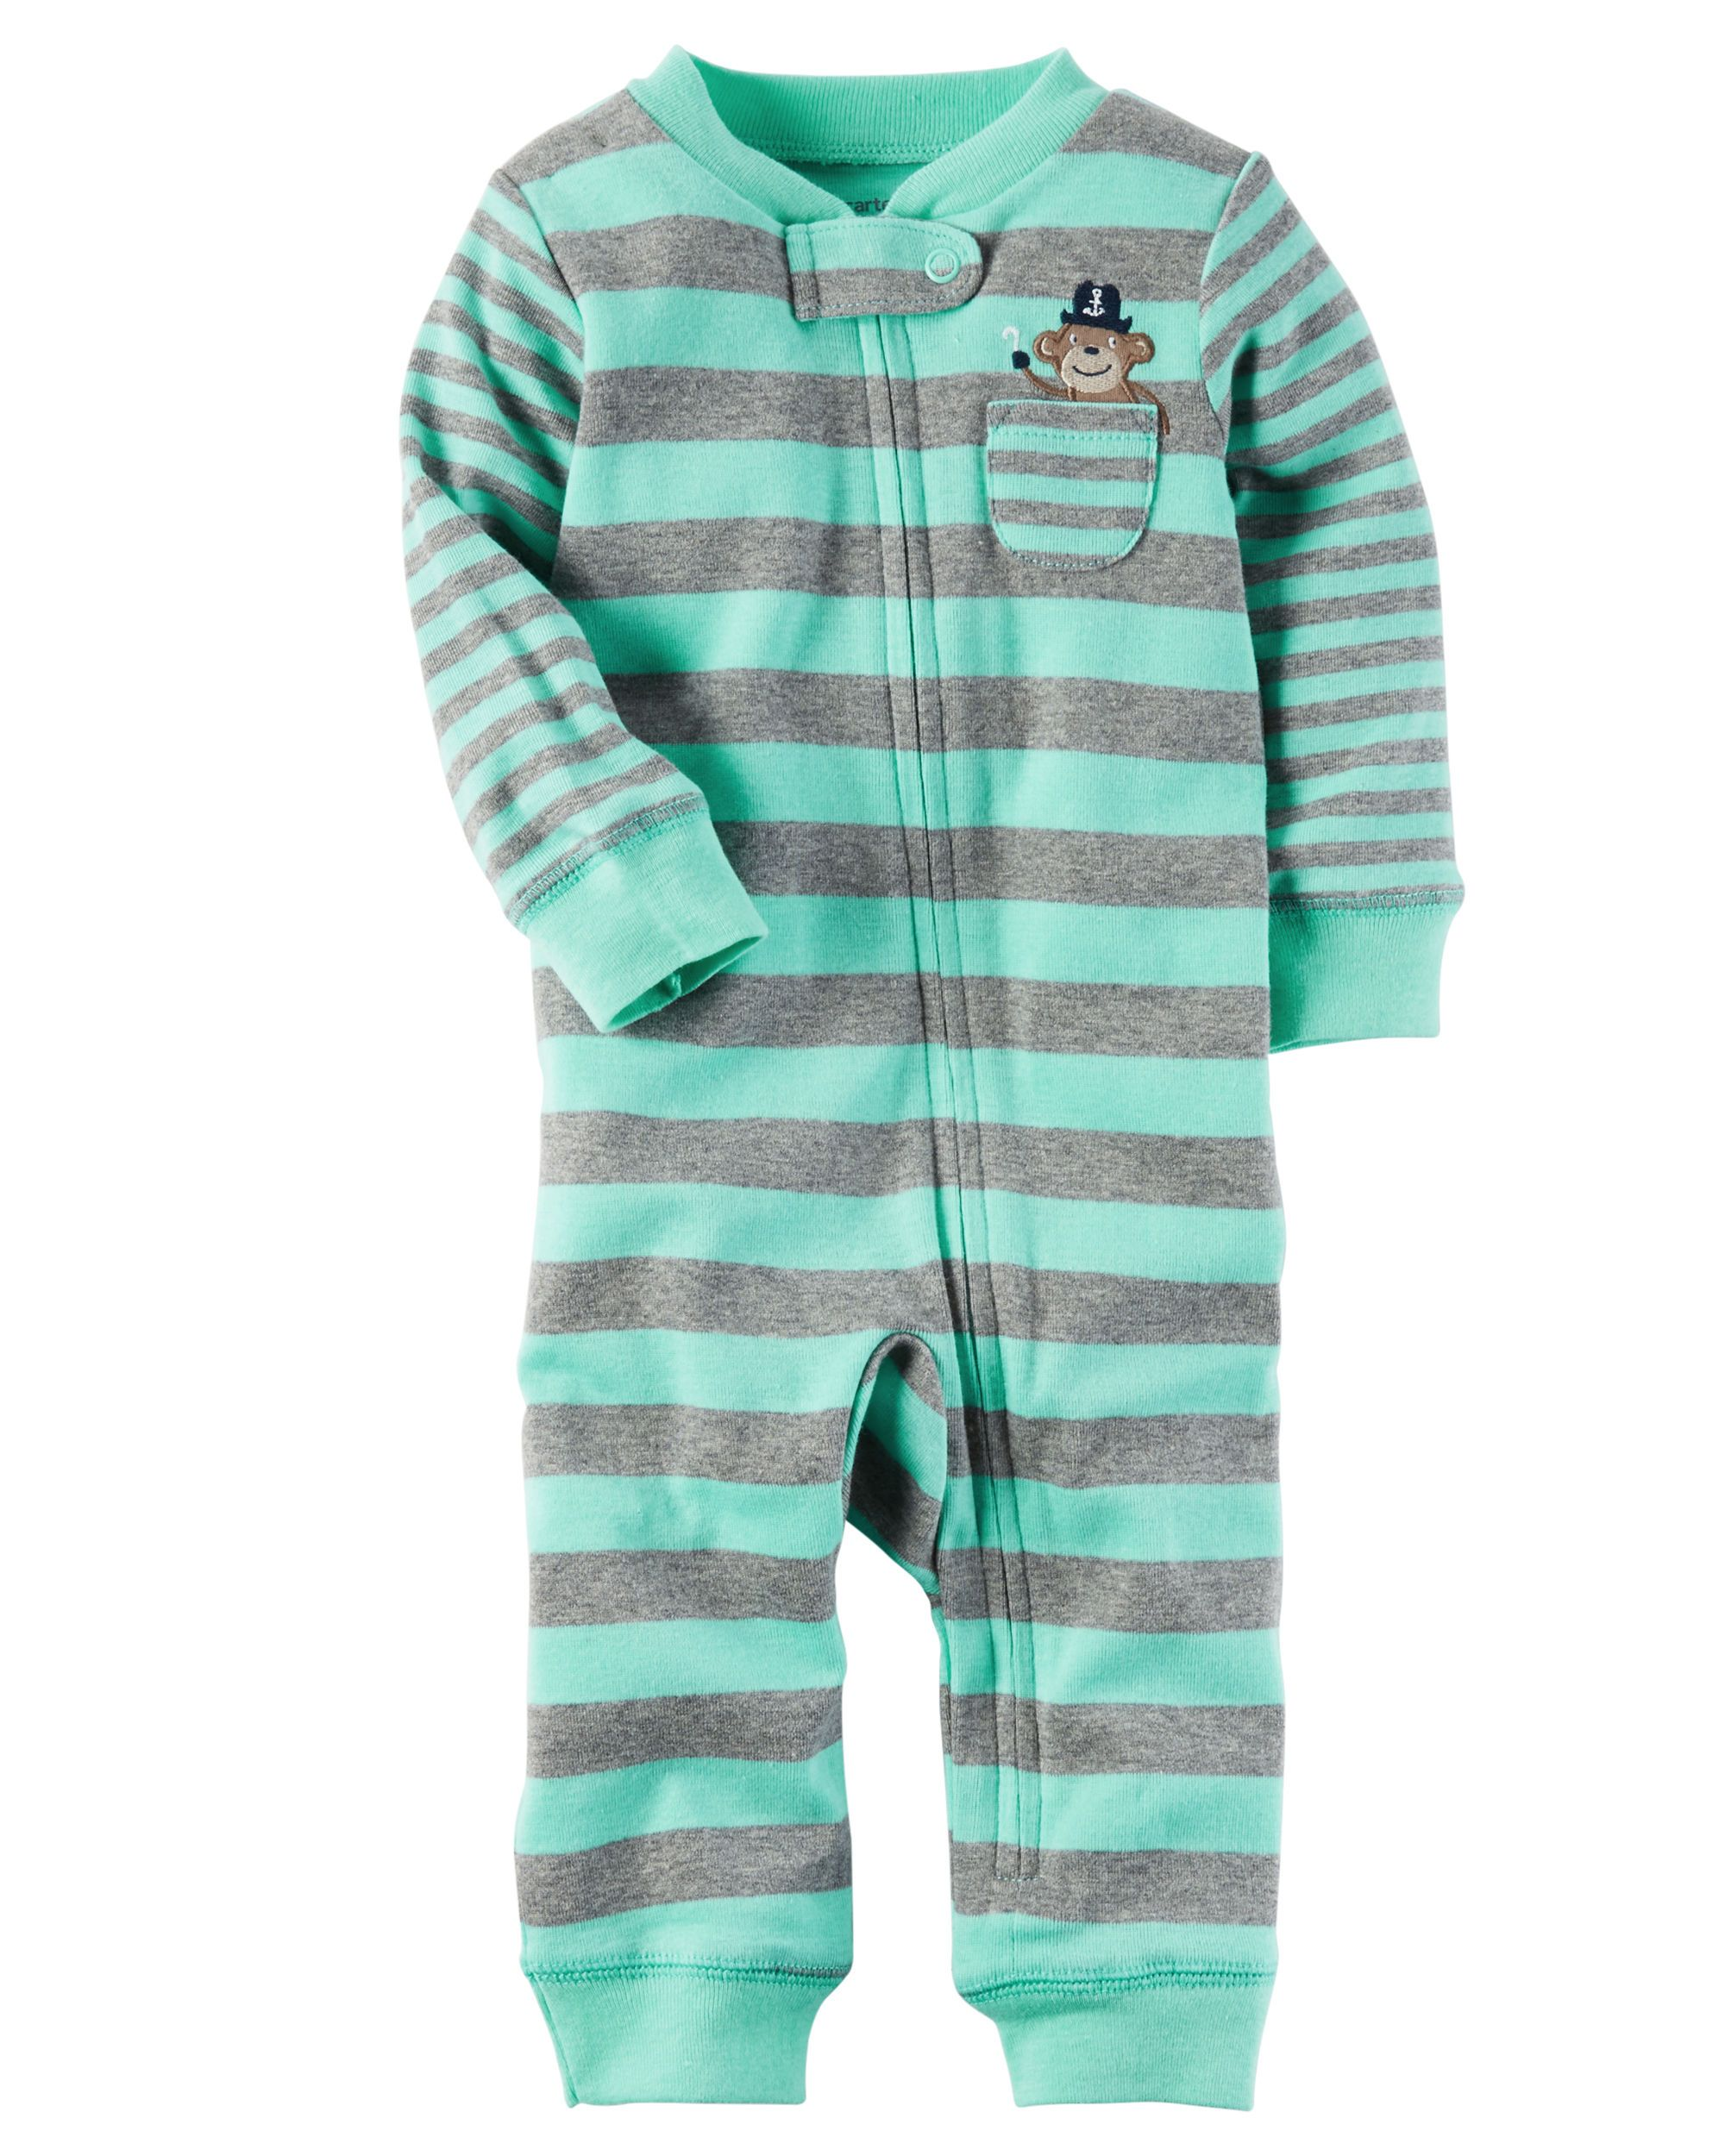 Baby Boy Cotton Zip-Up Footless Sleep   Play  c33db2c7d